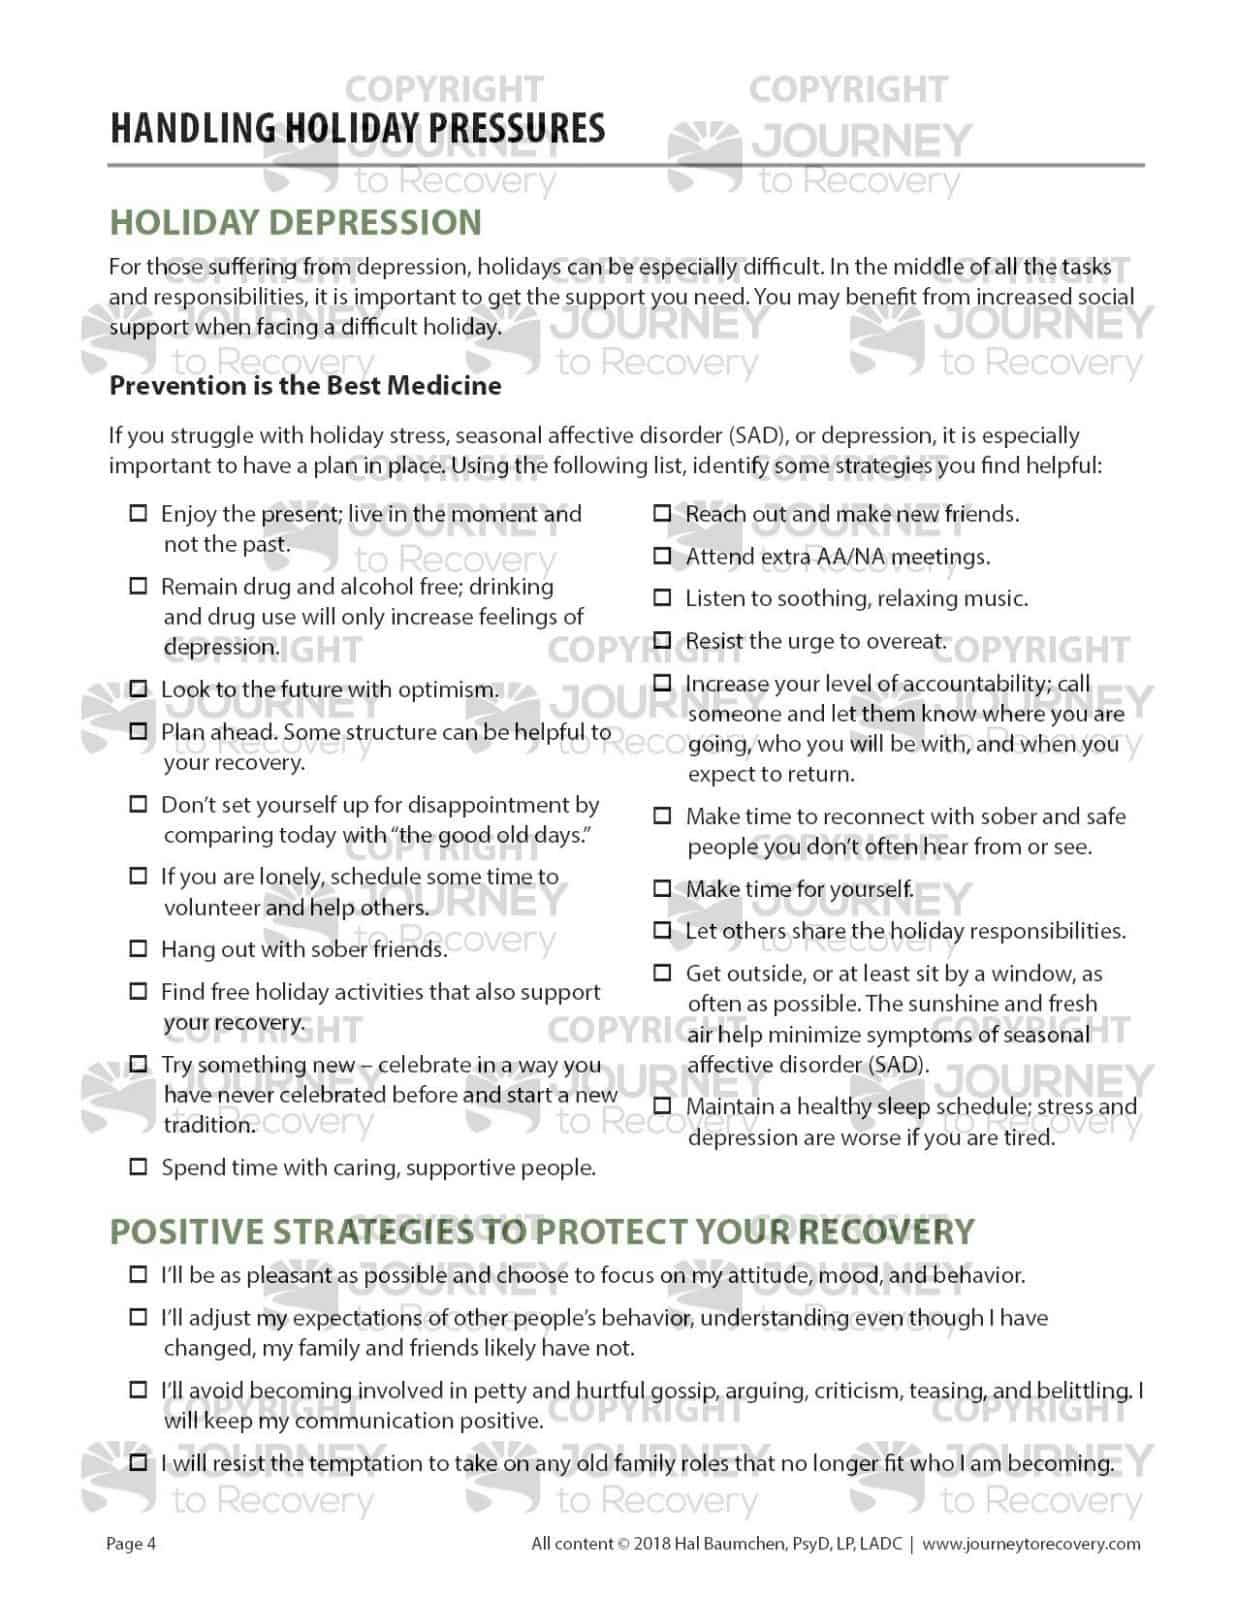 Handling Holiday Pressures Cod Worksheet